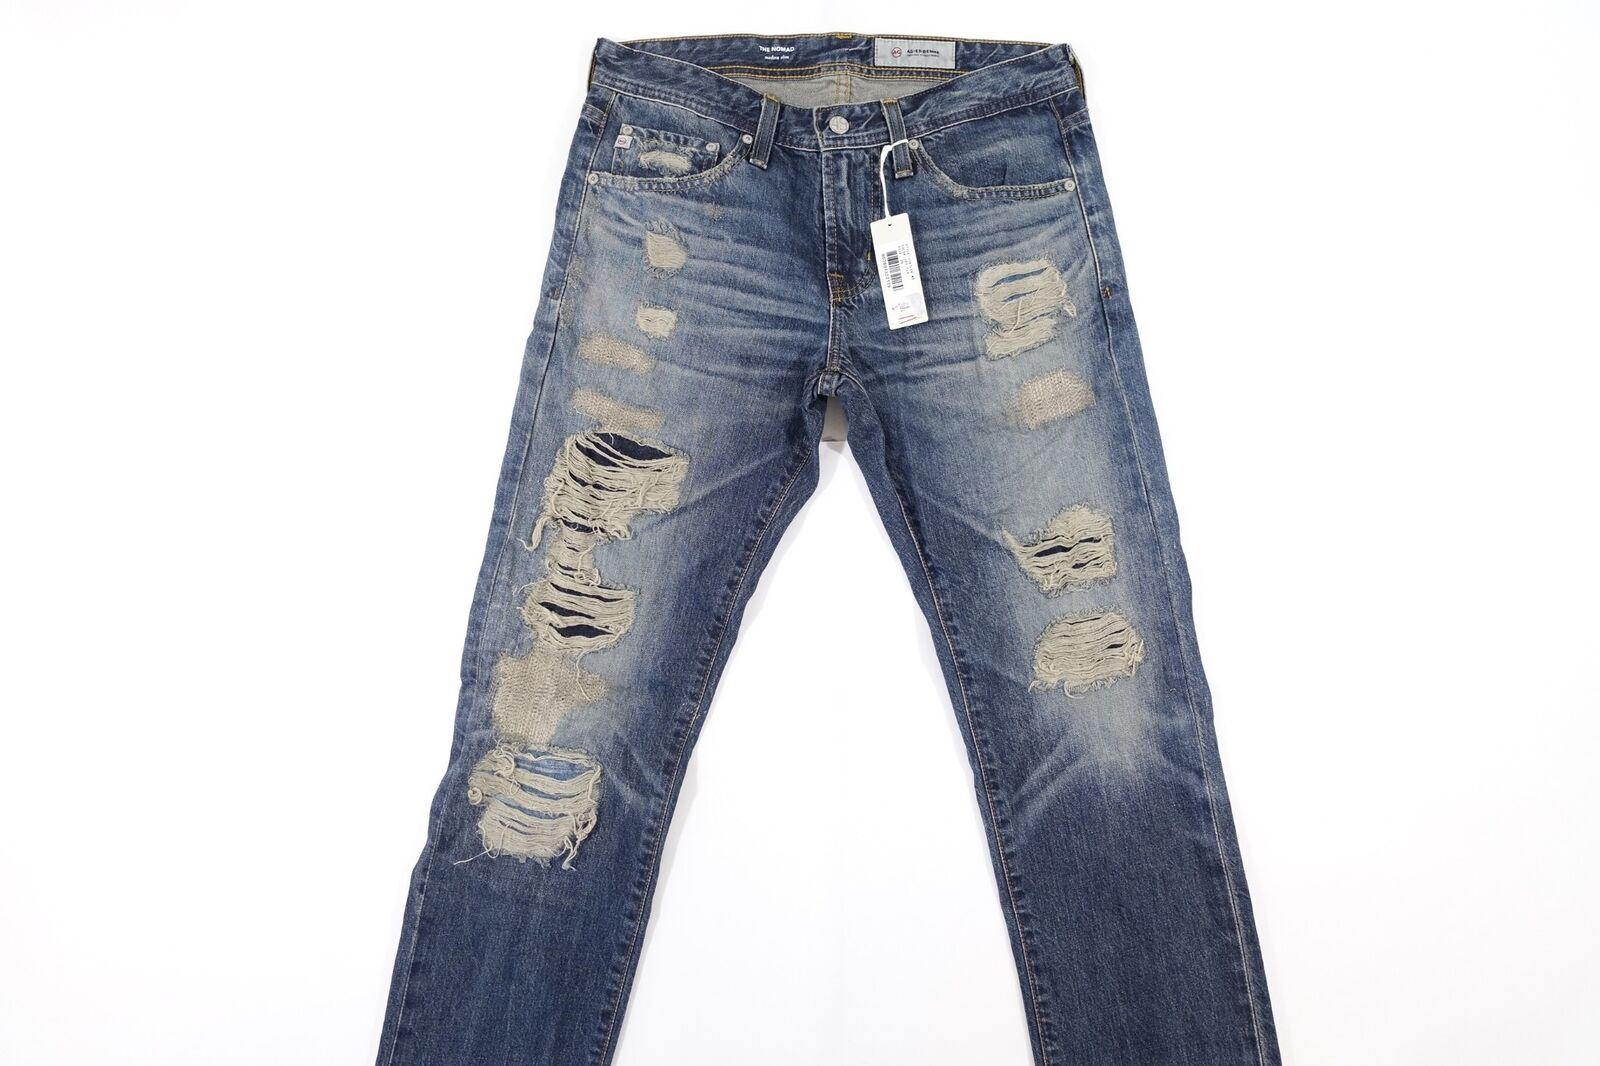 ADRIANO goldSHMIED AG AG-ED DENIM RIPPED CUT KNEE FADED 29 THE NOMAD SLIM JEANS